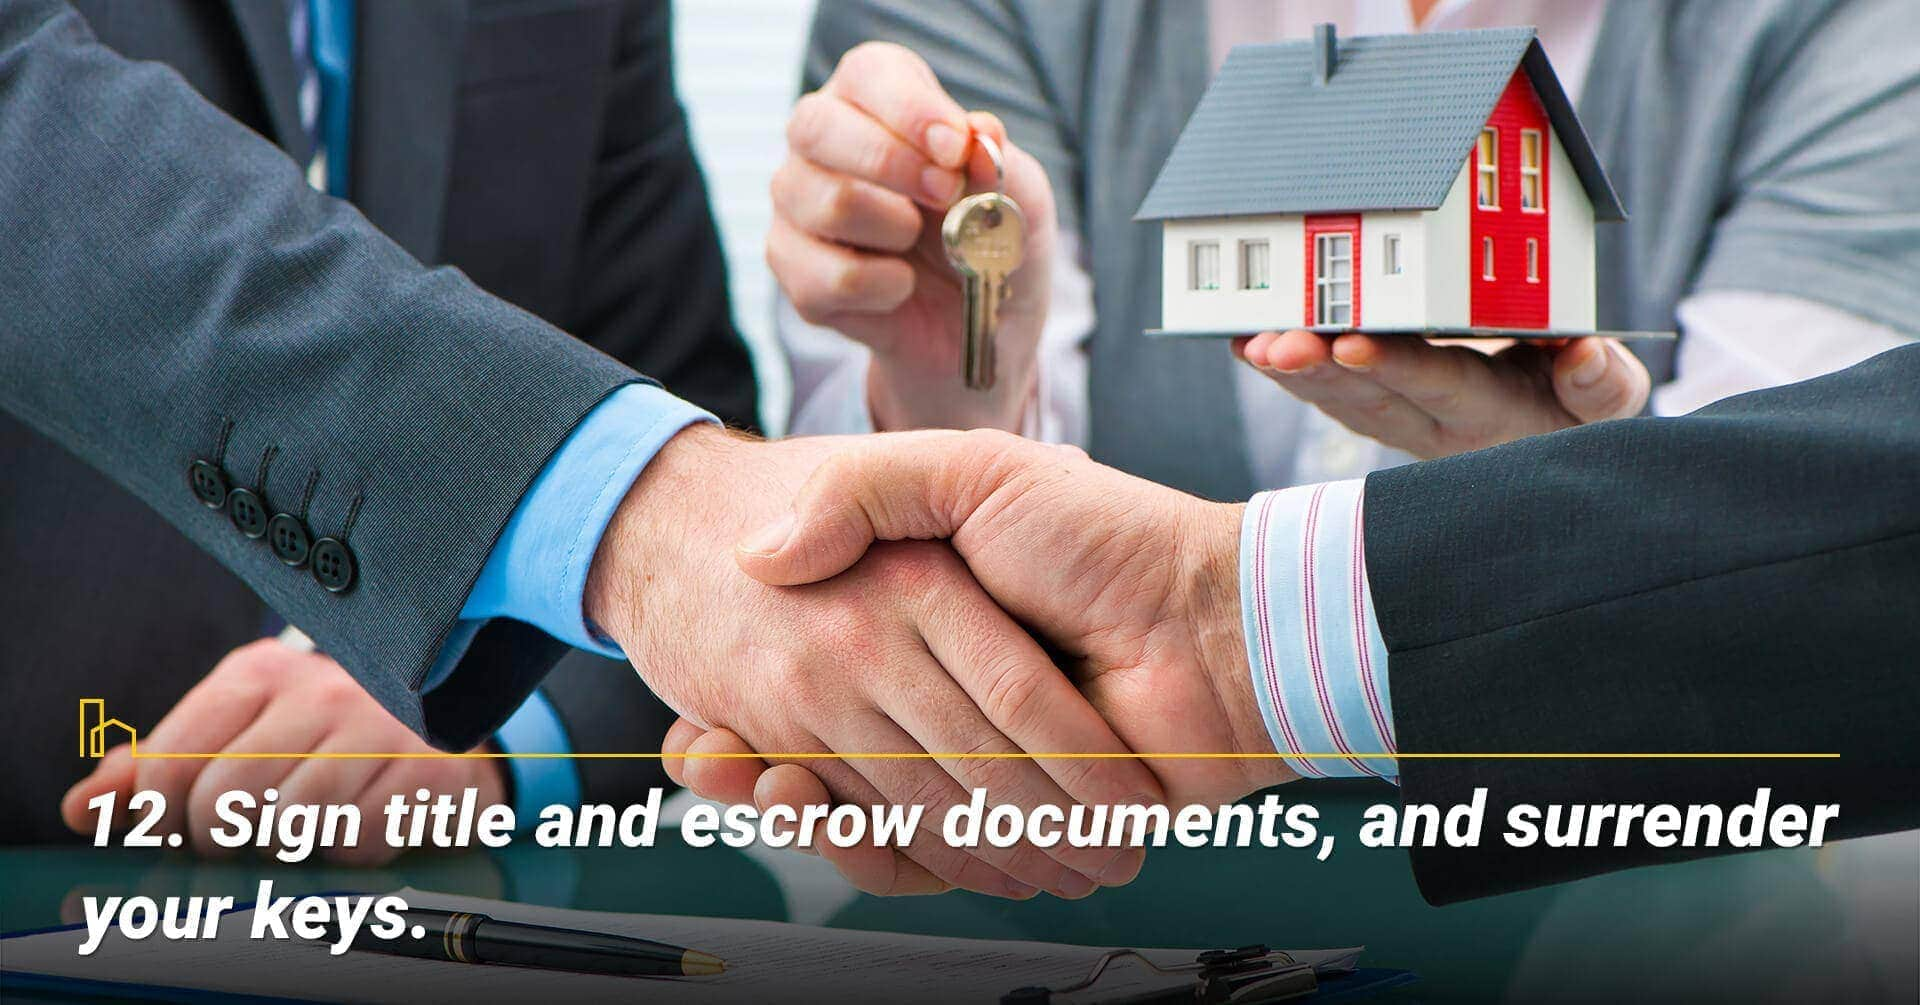 Sign title and escrow documents, and surrender your keys